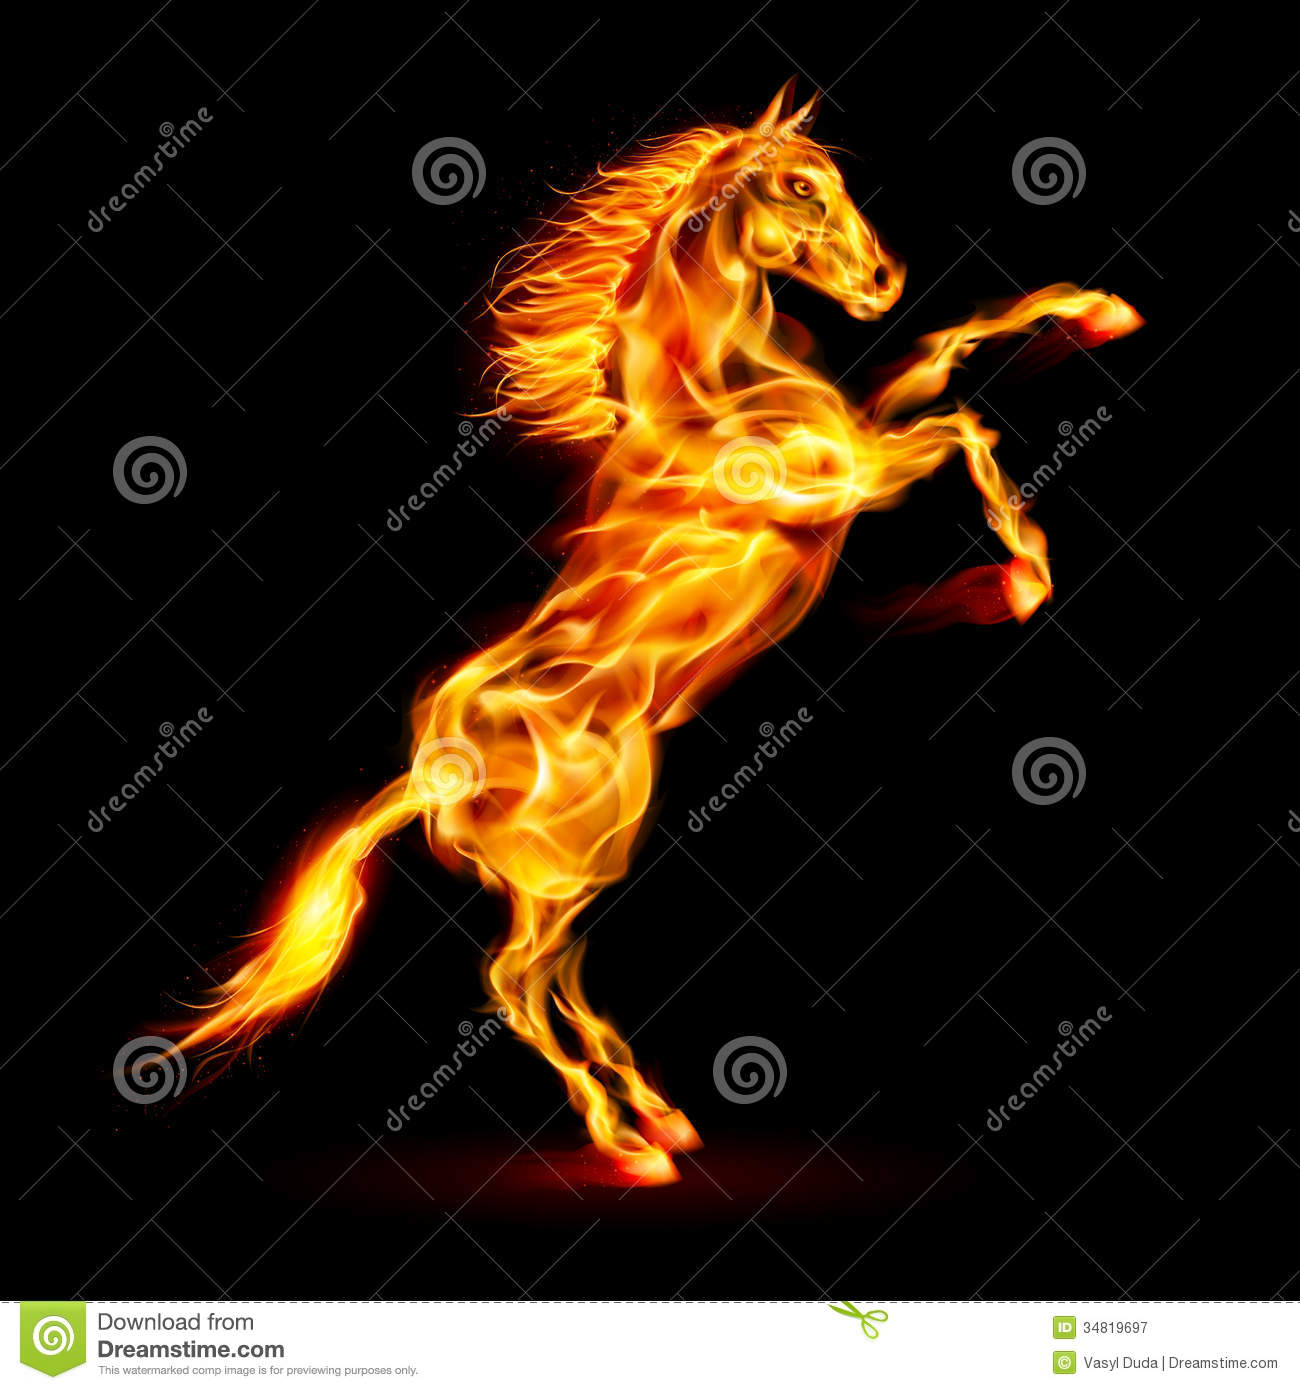 Fire And Water Hd Wallpapers Fire Horse Rearing Up Stock Vector Illustration Of Free